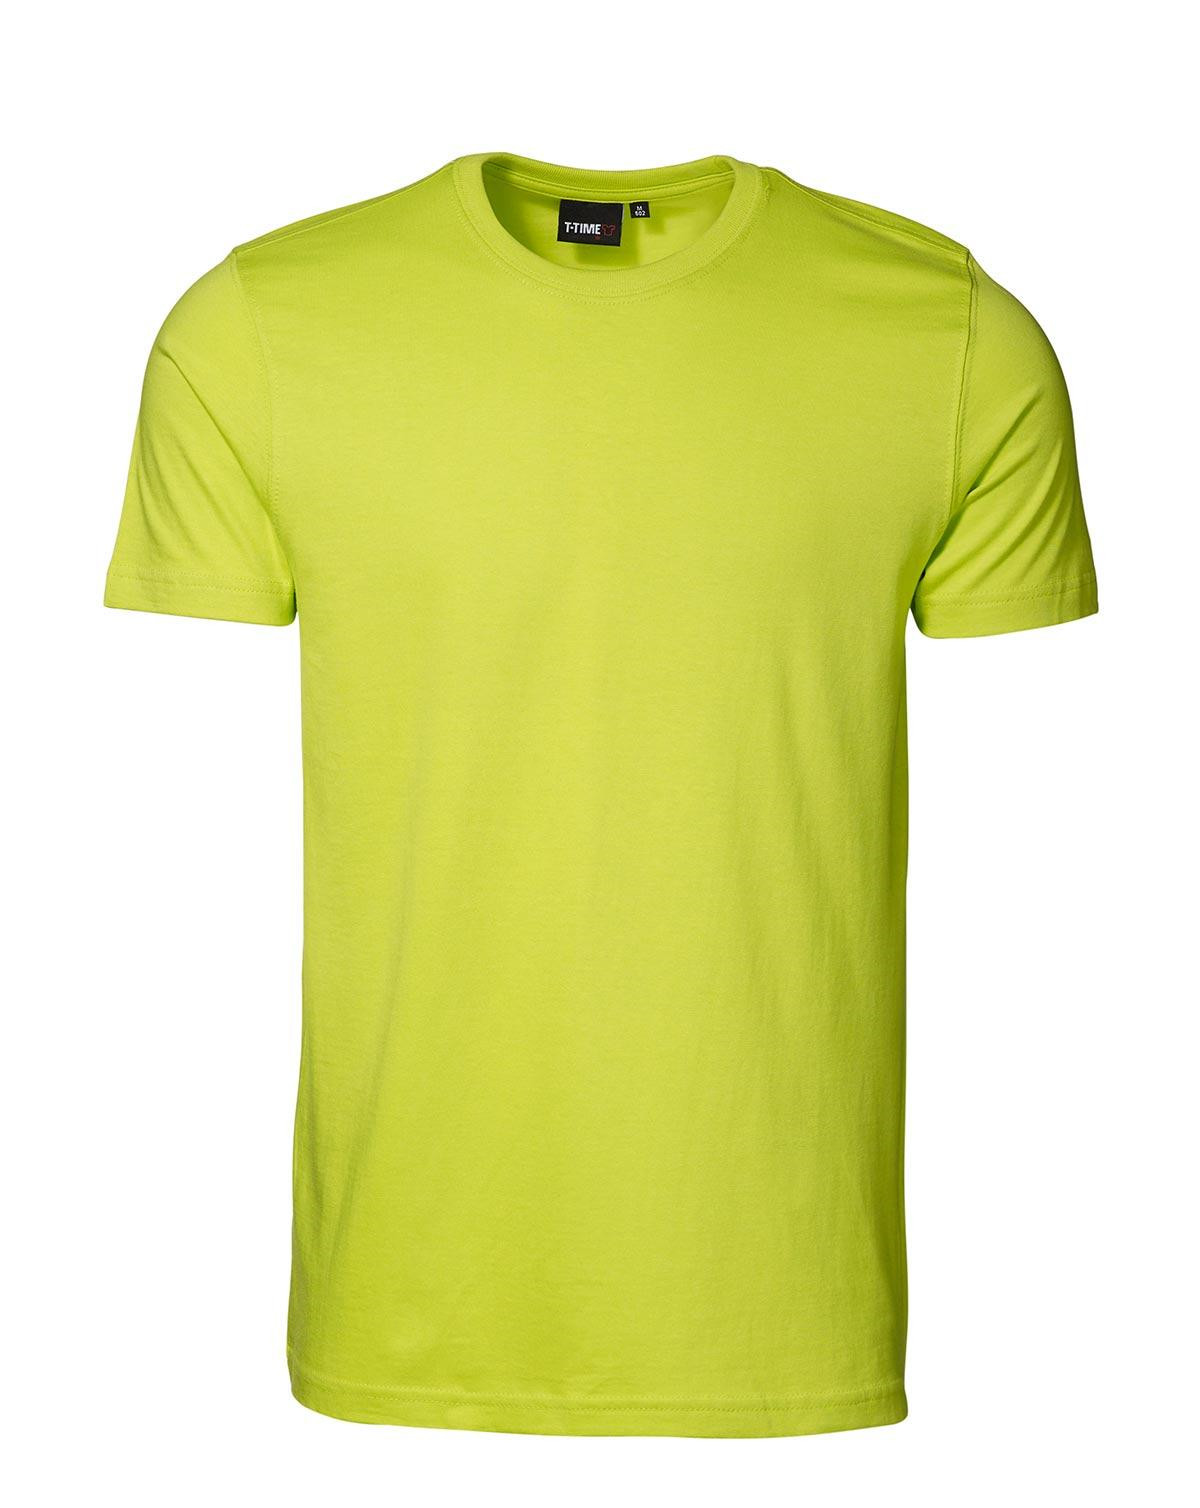 ID T-shirt, Sporty-Fit (Lime, XL)